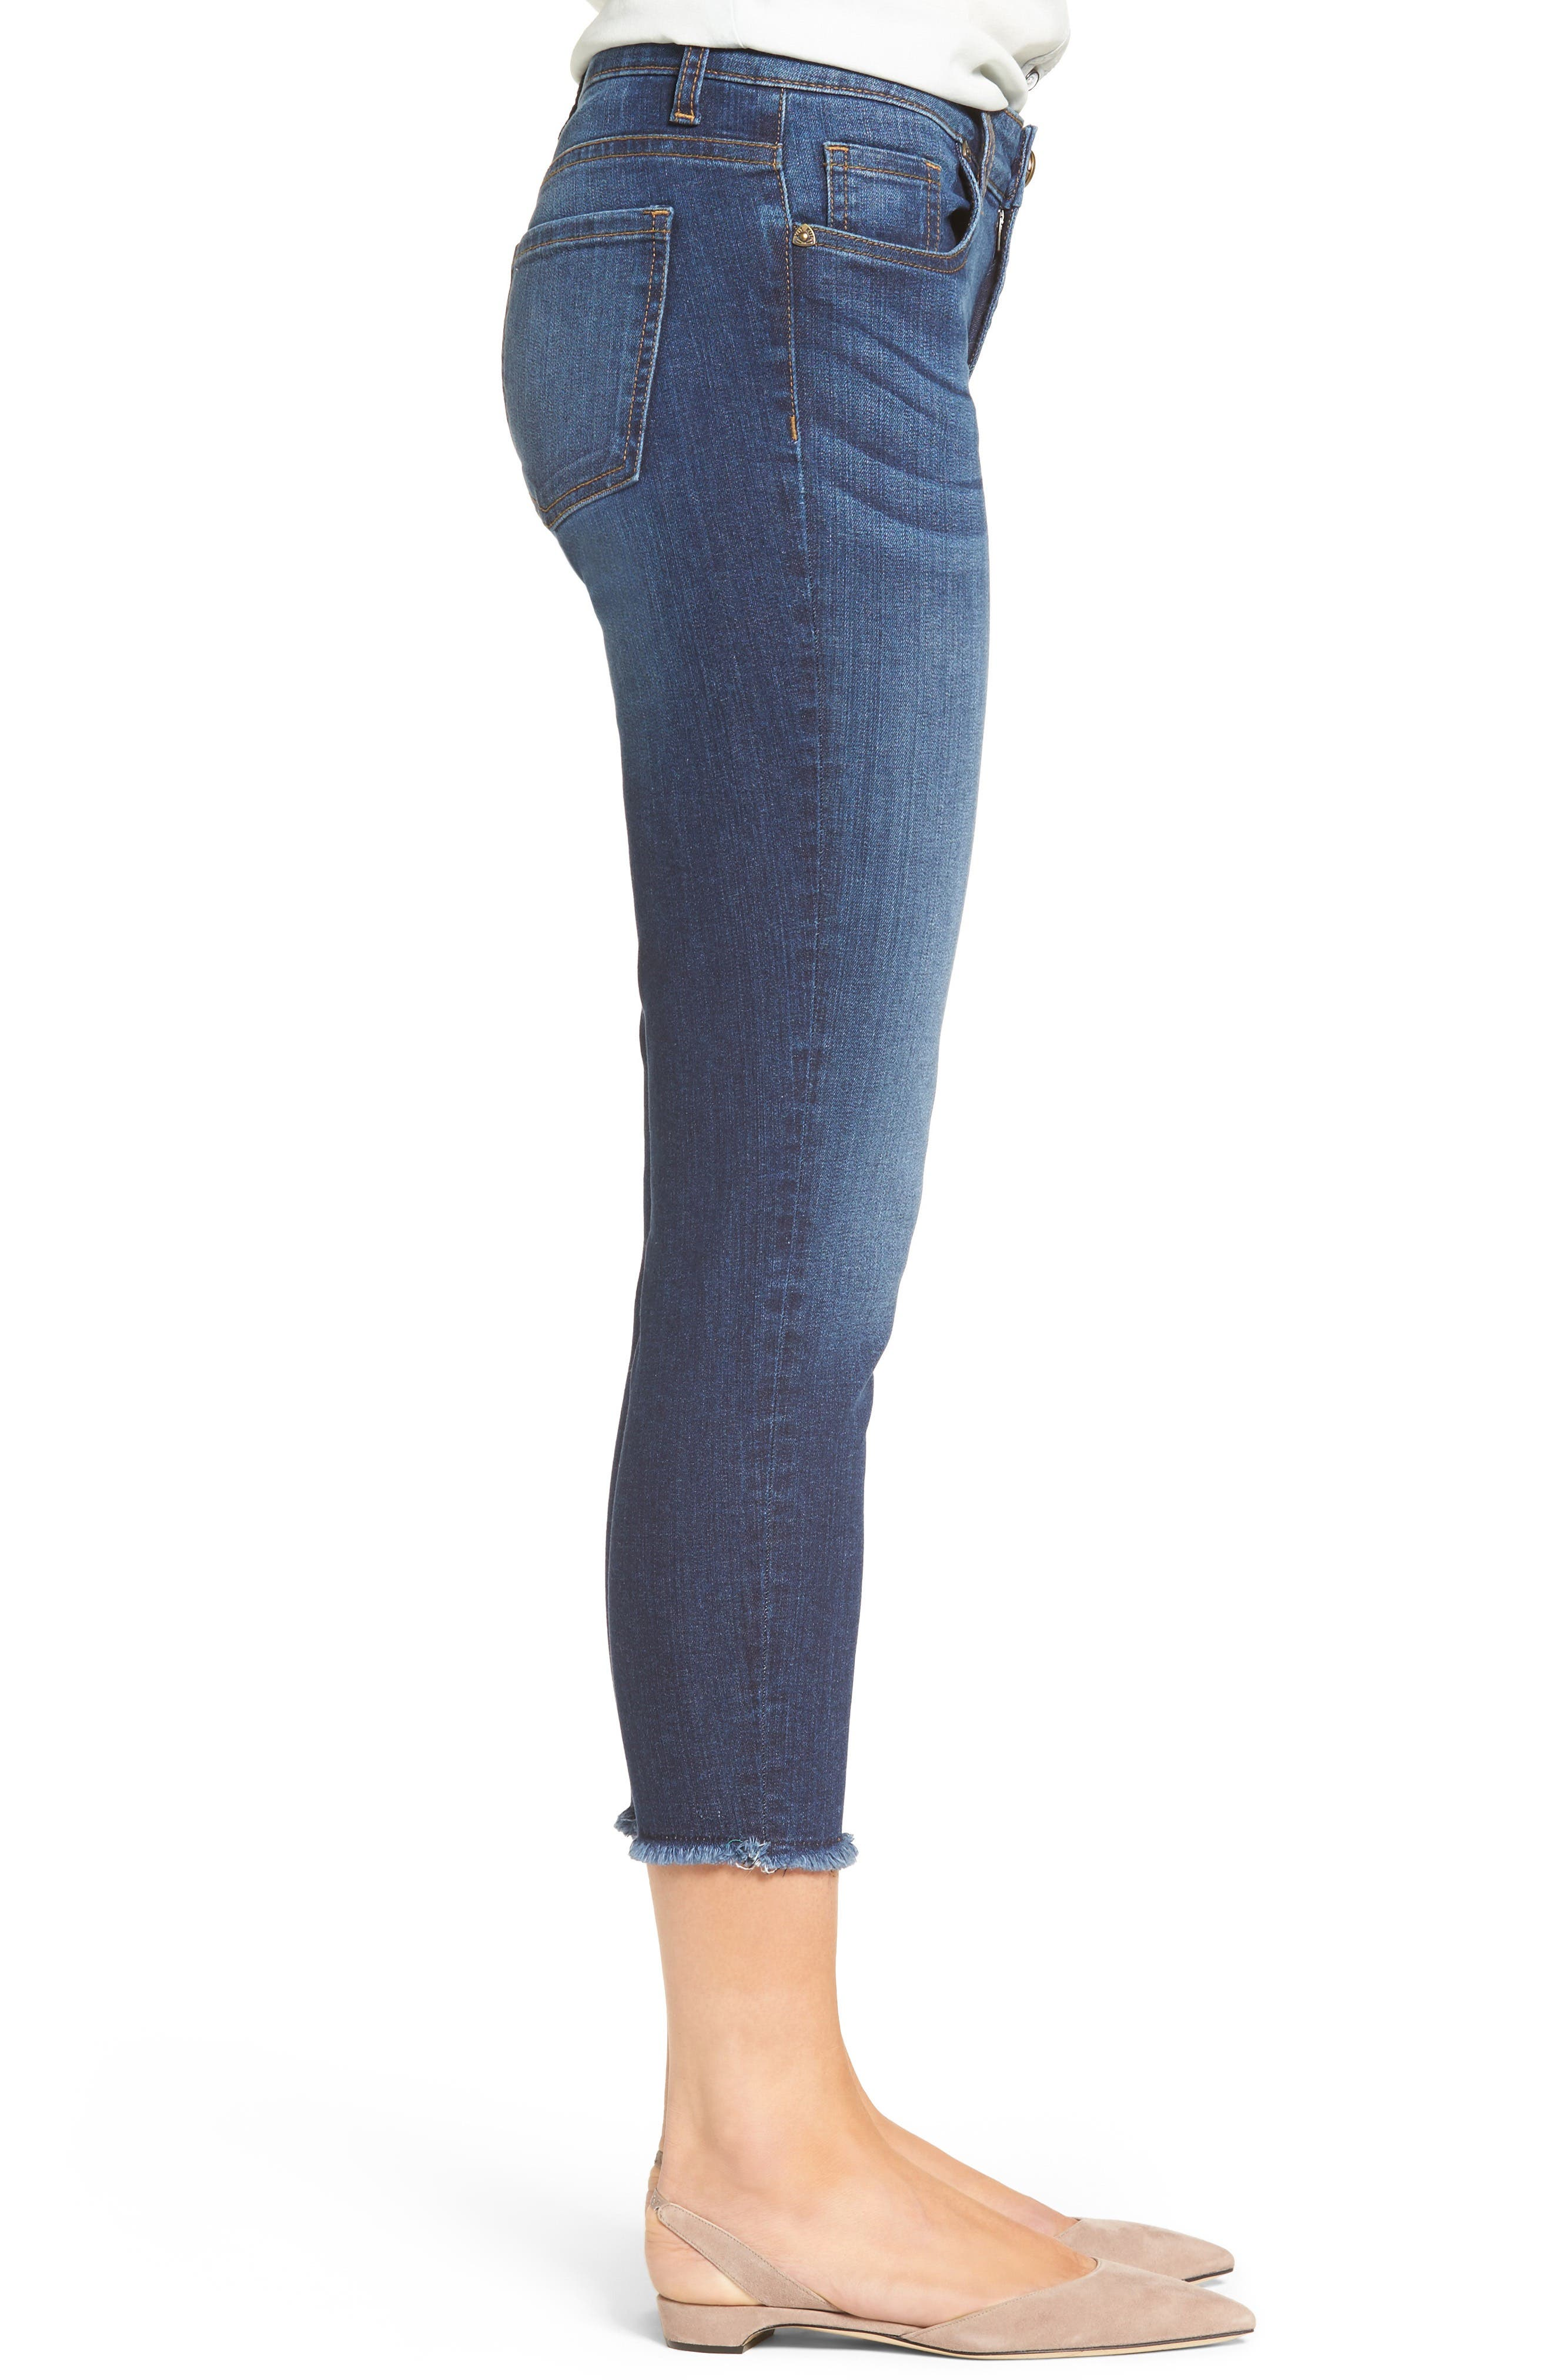 Alternate Image 3  - KUT from the Kloth Donna Ripped Crop Jeans (Peaceable) (Regular & Petite)